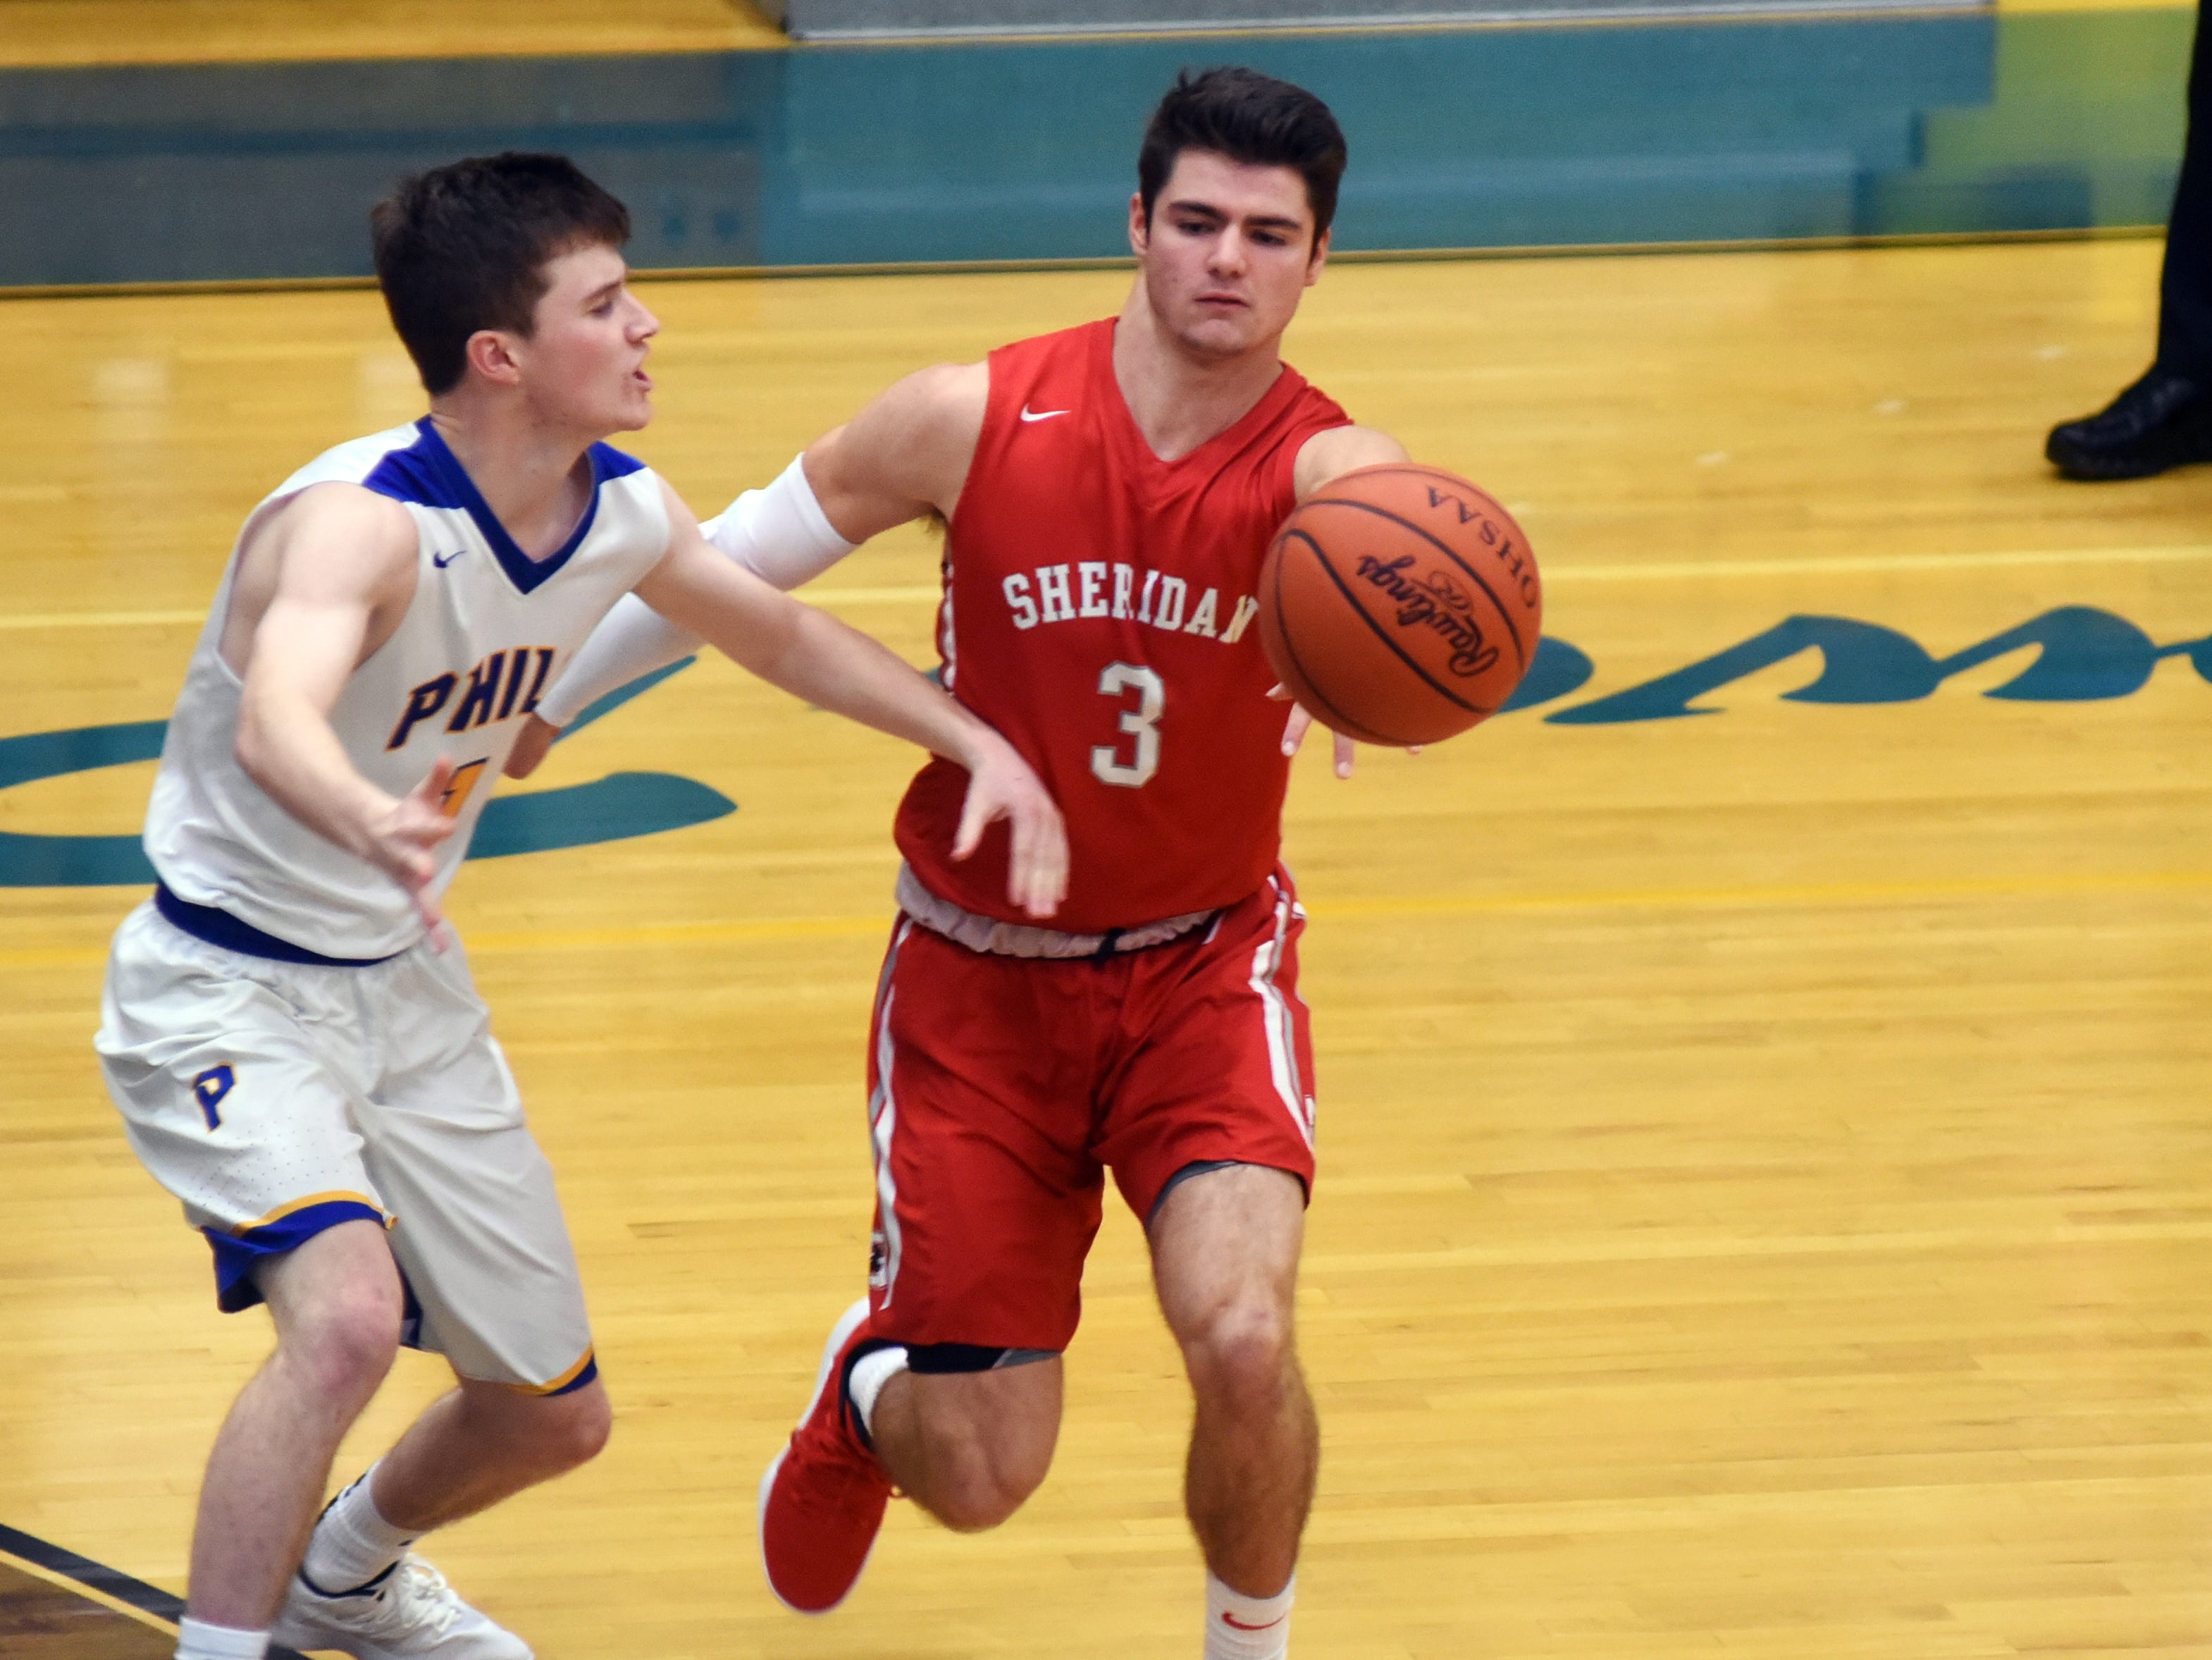 Sheridan's Ethan Heller passes to a teammate against Philo.